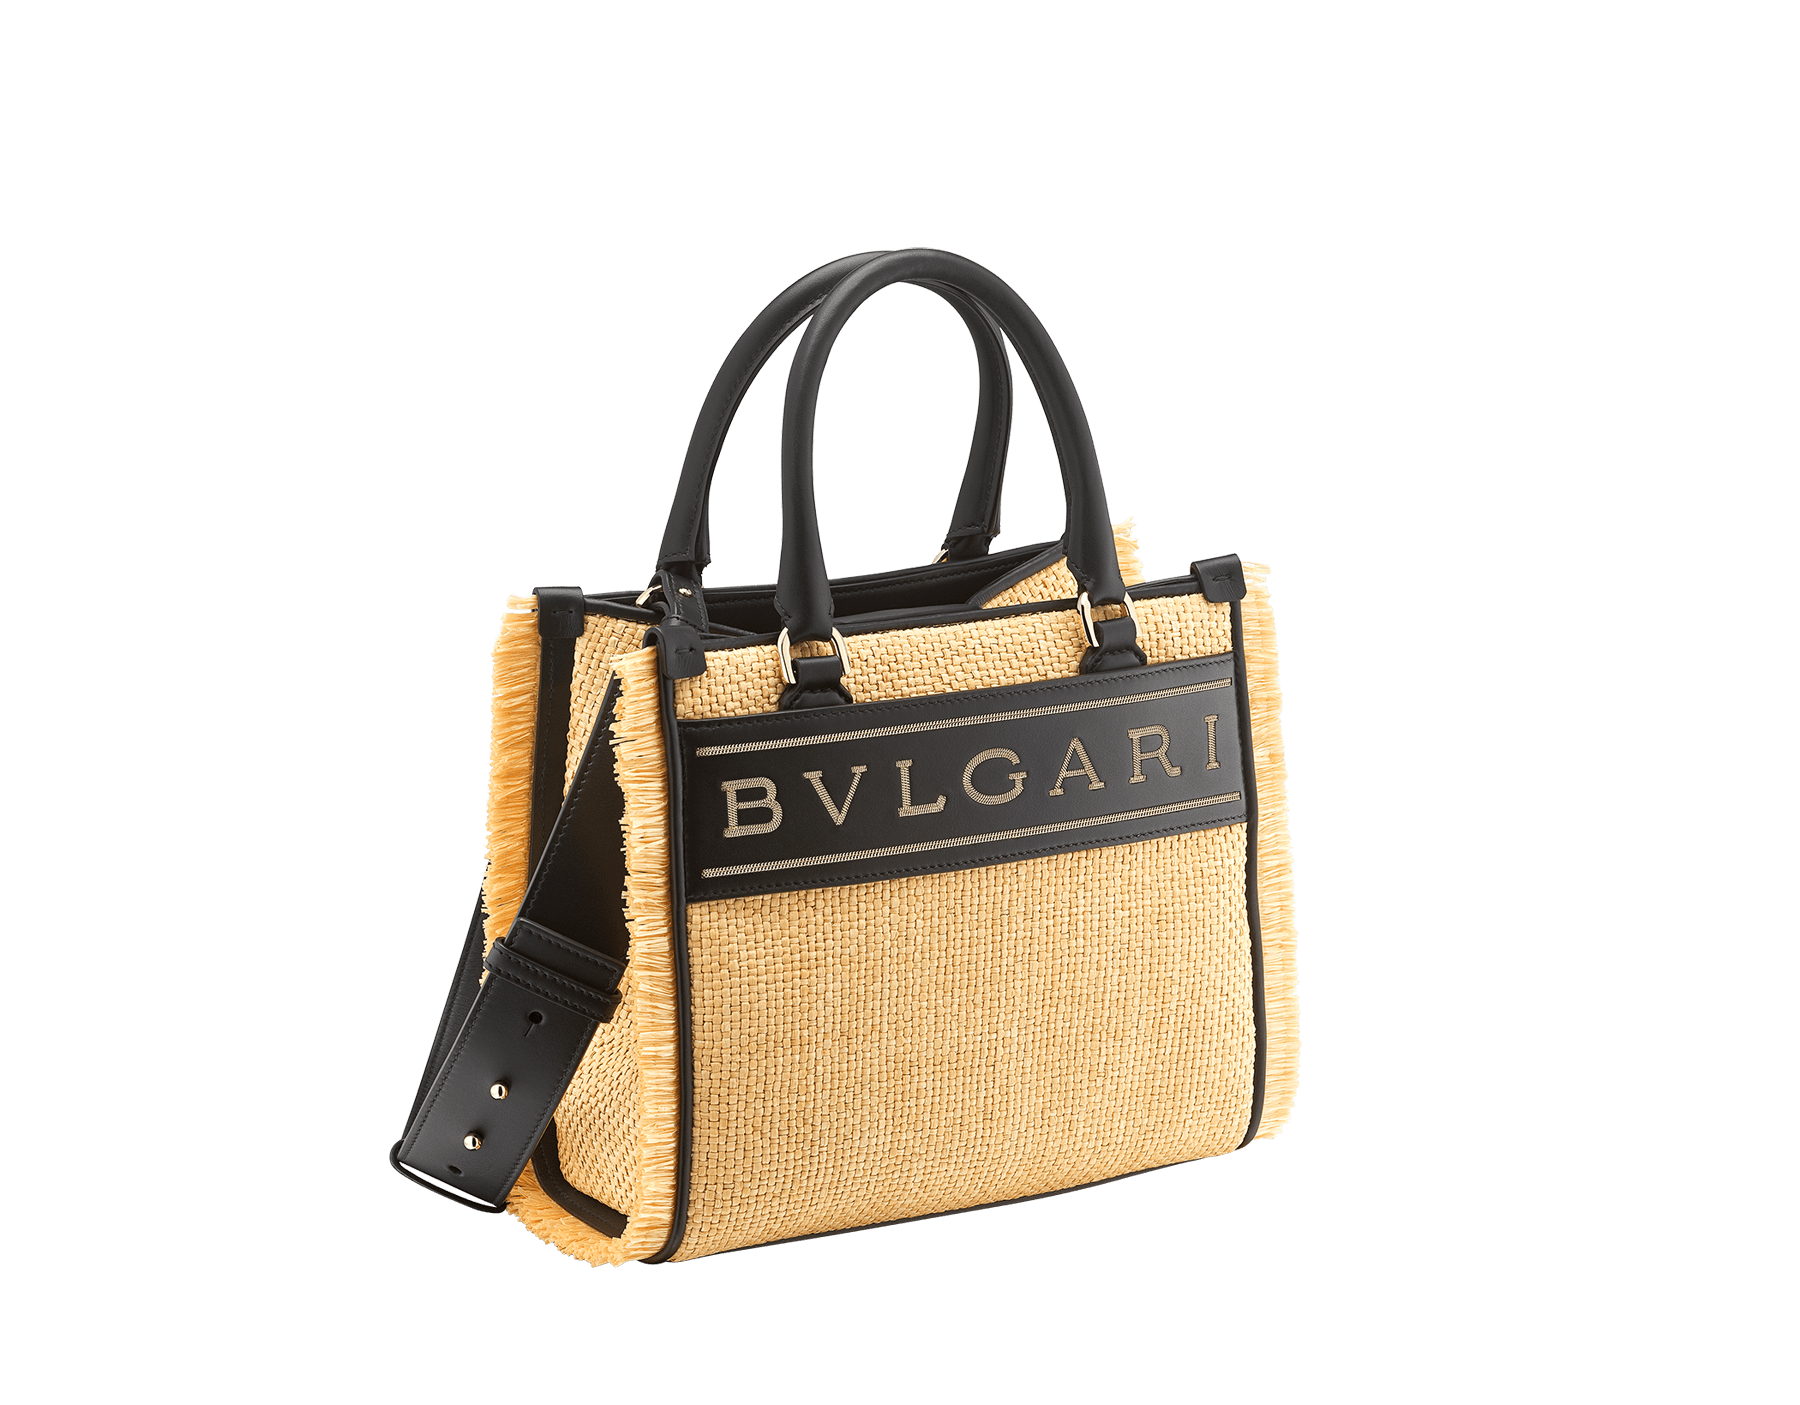 """Bvlgari Logo"" tote bag in beige raffia enhanced with beige raffia fringes, and black grosgrain internal lining. Bvlgari logo featured with chain inserts on the black calf leather. 290953 image 2"